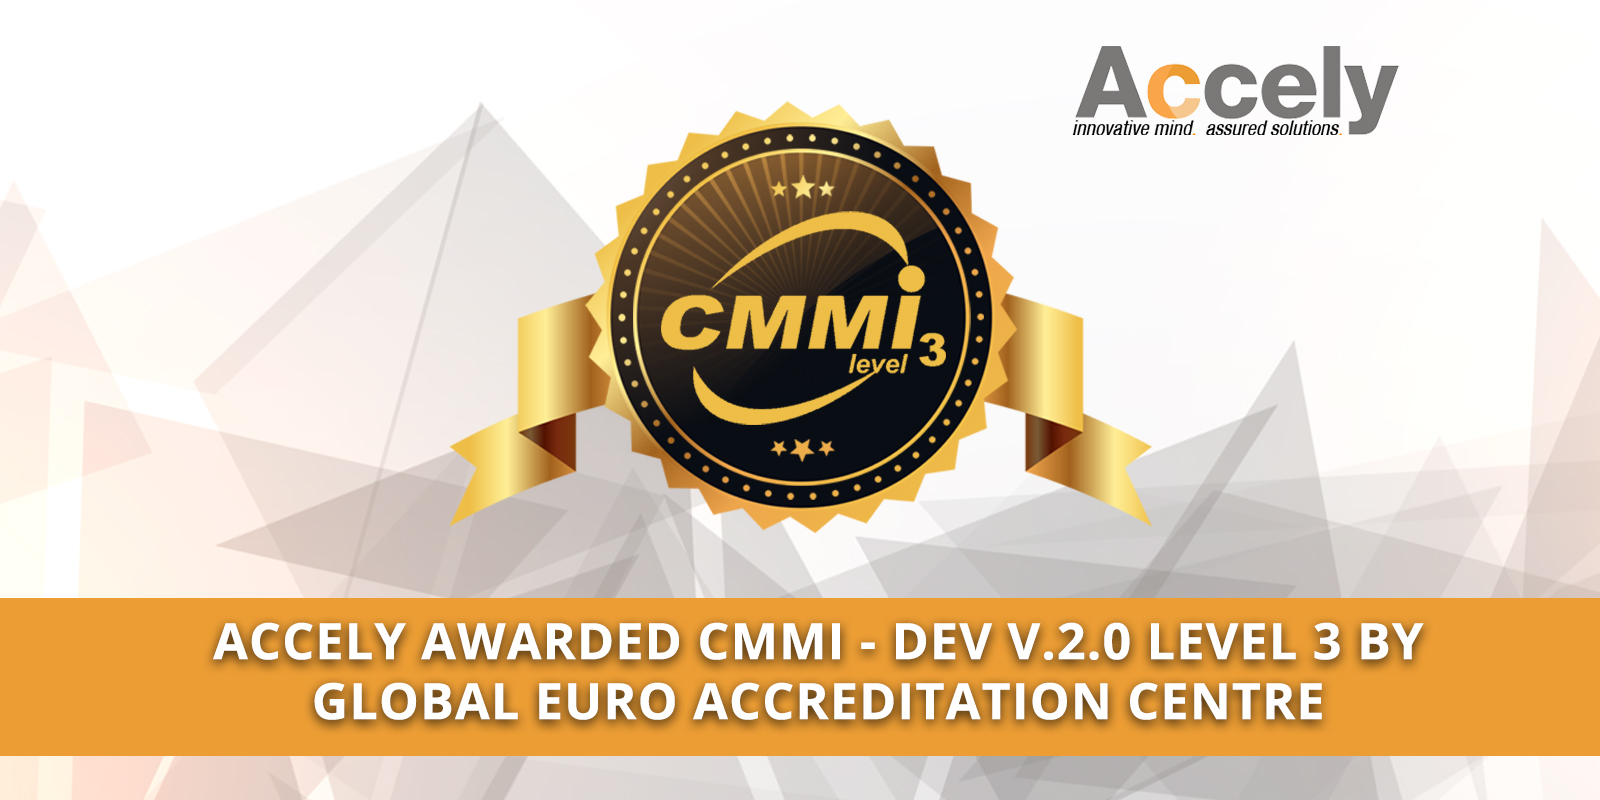 Accely Awarded CMMI - Dev V.2.0 Level 3 By Global Euro Accreditation Centre